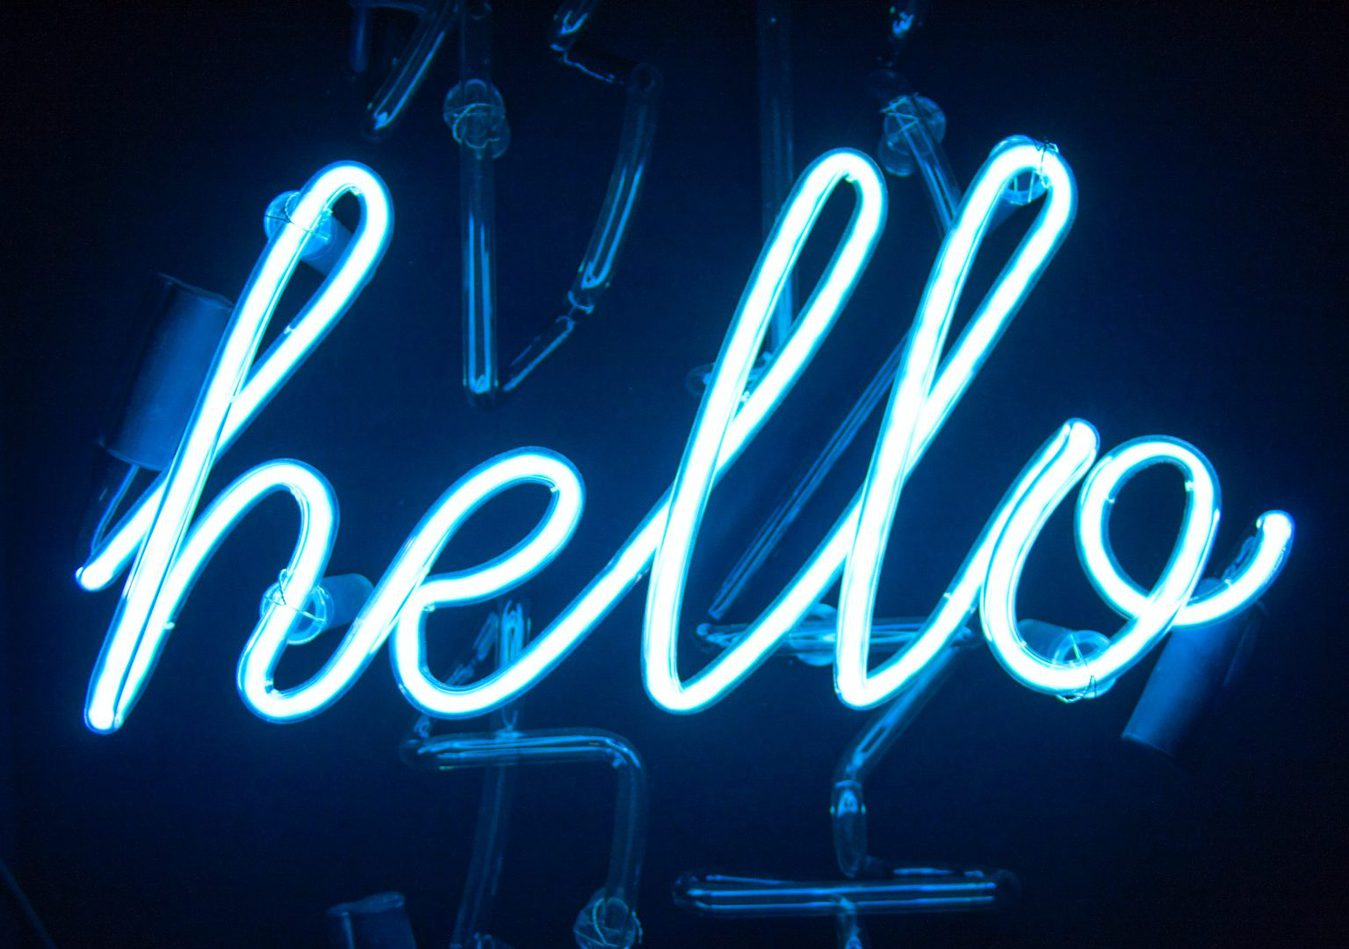 blue neon sign that says 'hello' in cursive writing